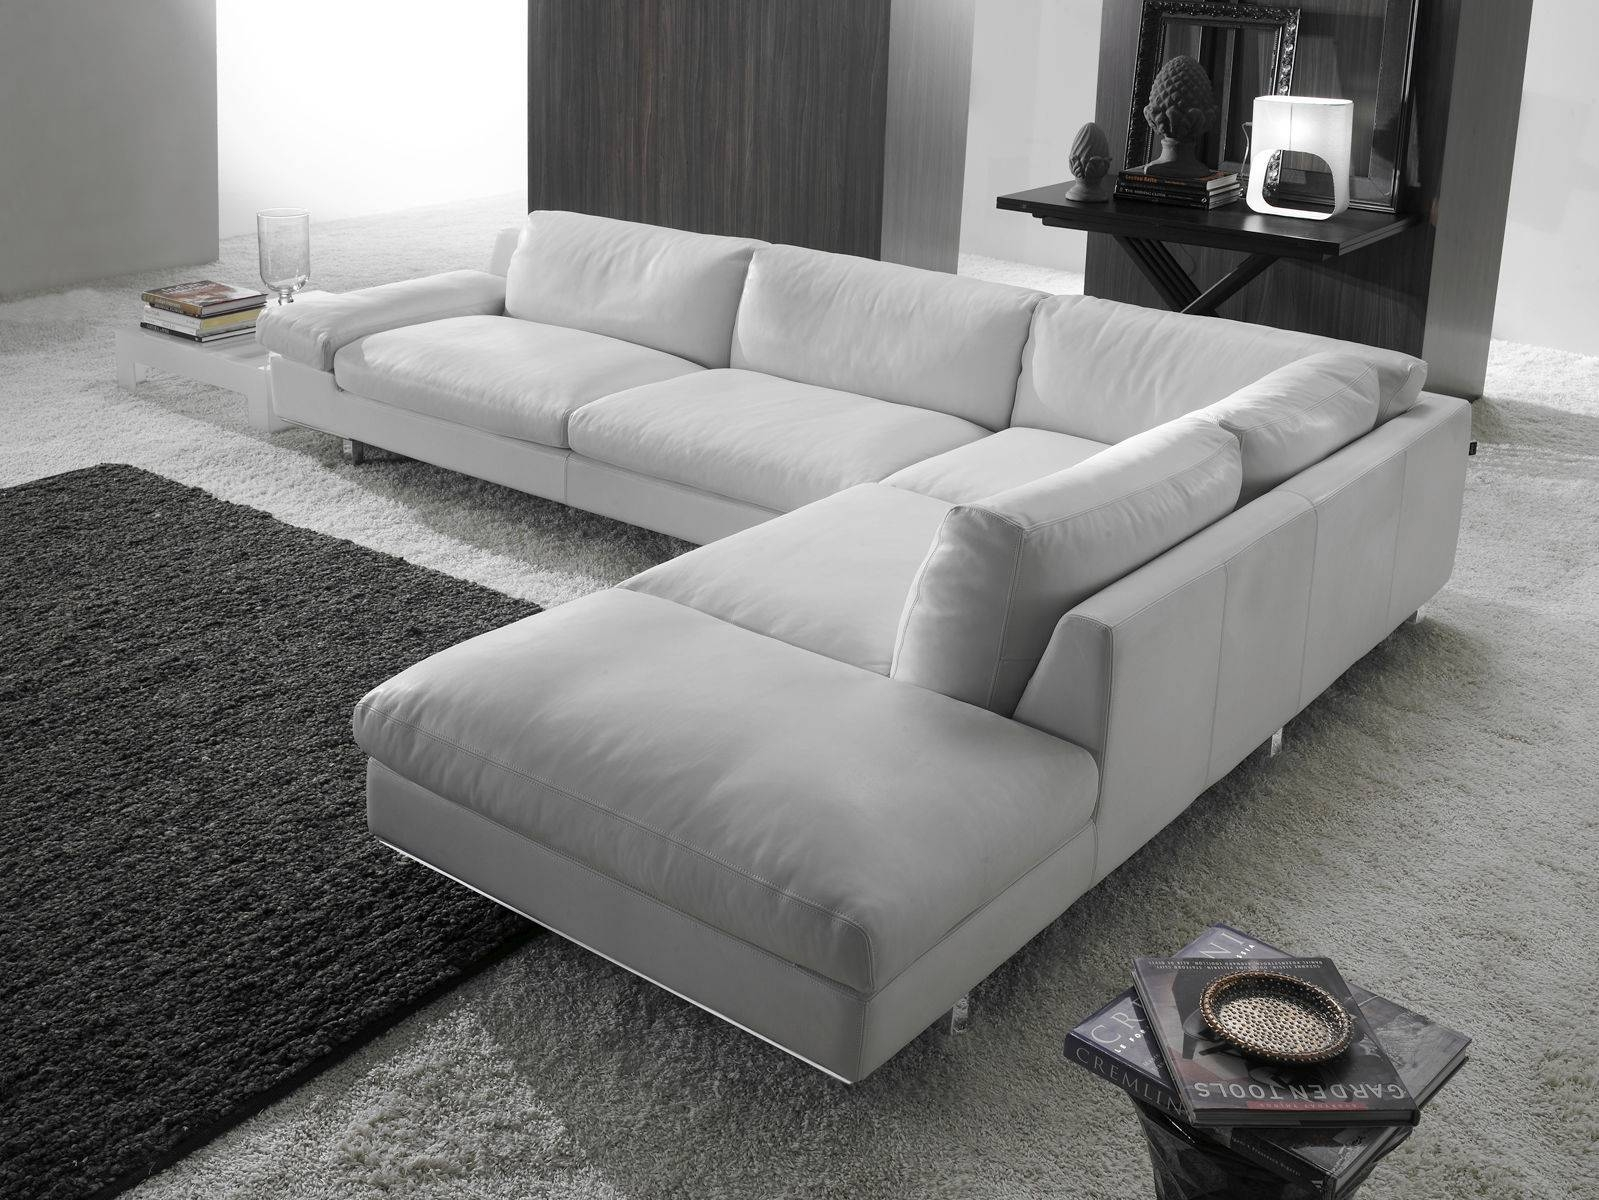 Corner Sofa / Contemporary / Leather / 4-Seater - Paranà with regard to 4 Seat Sofas (Image 13 of 30)